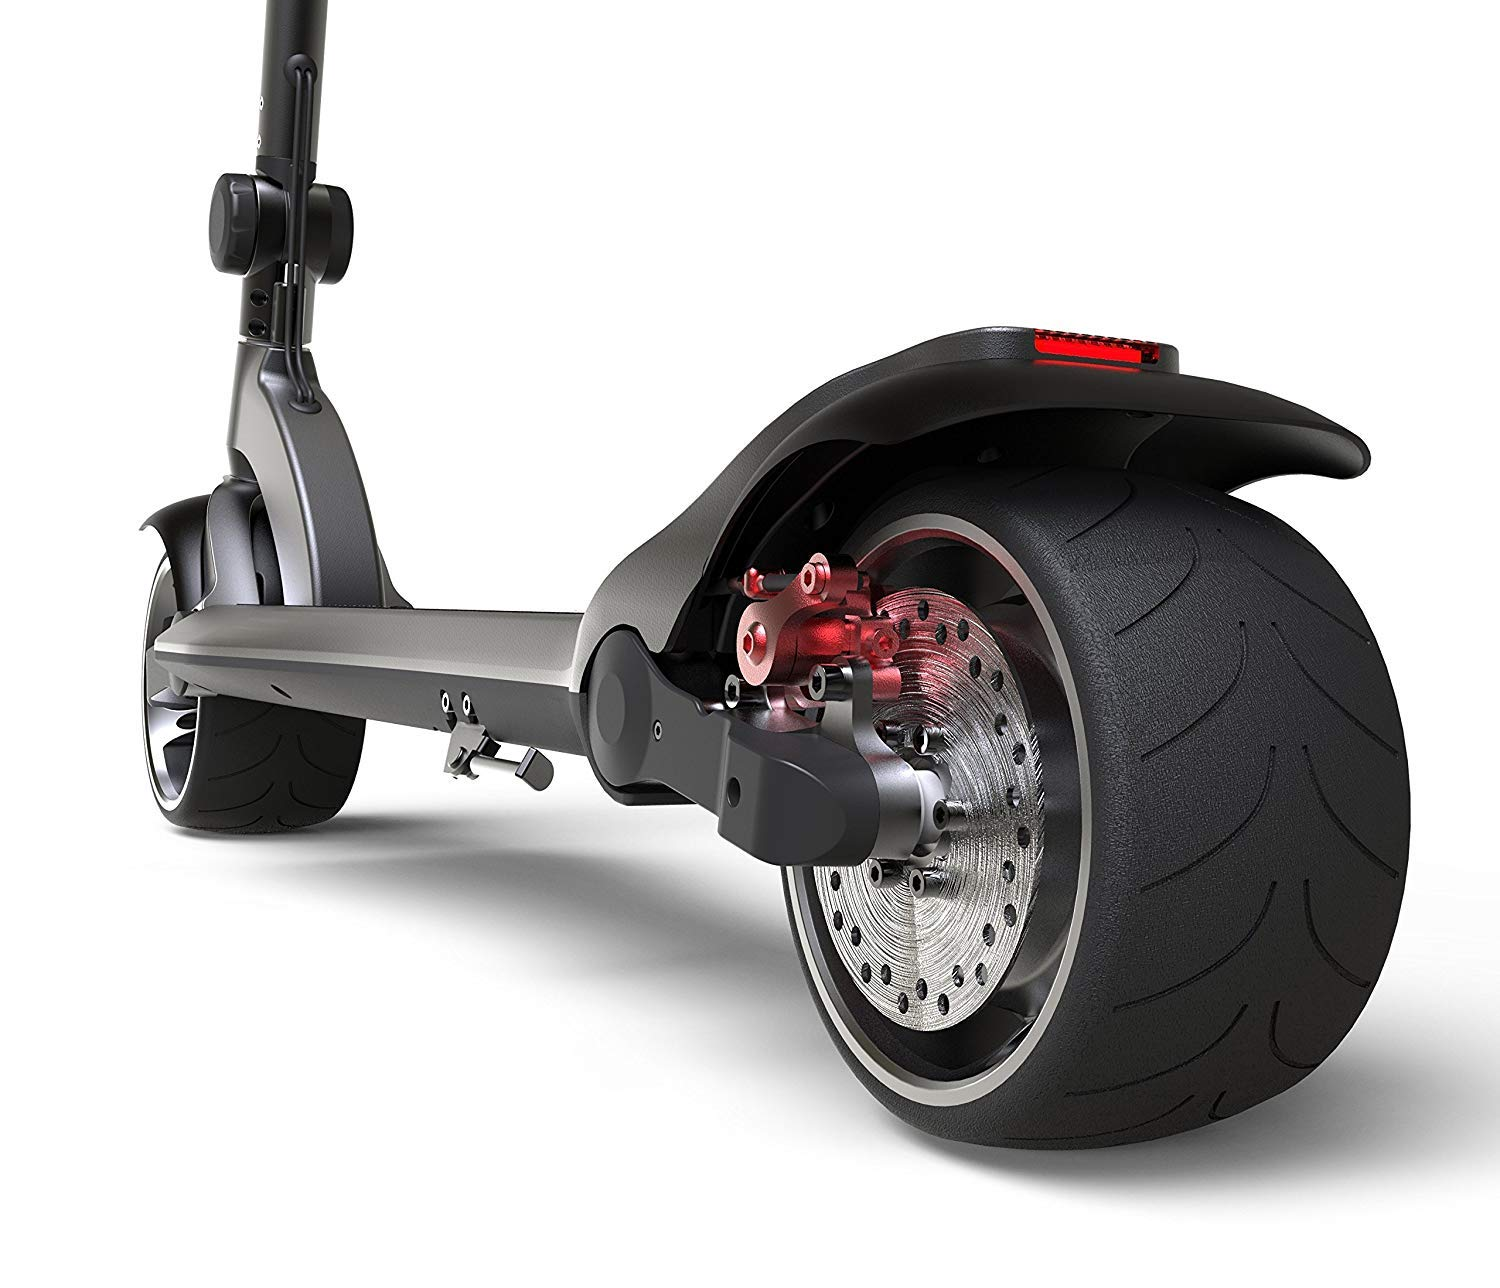 Amazon.com: Mercane WideWheel - Potente patinete eléctrico ...